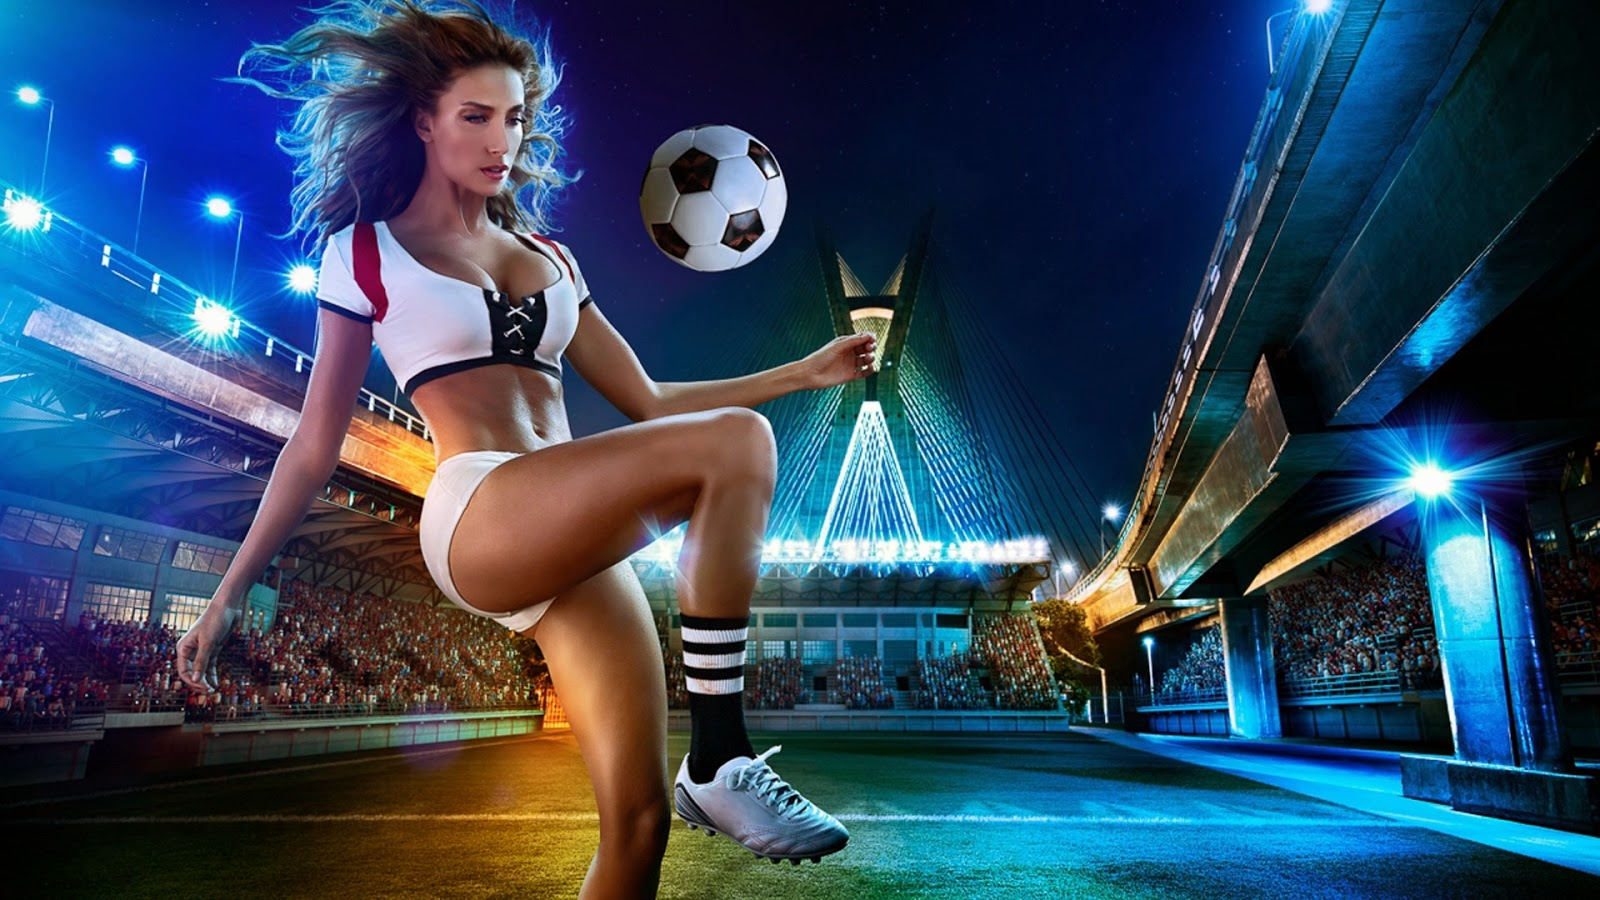 Cute Baby Girl Hd Wallpapers 1080p Brazil World Cup 2014 Football Baby Sexy Wallpaper Hd